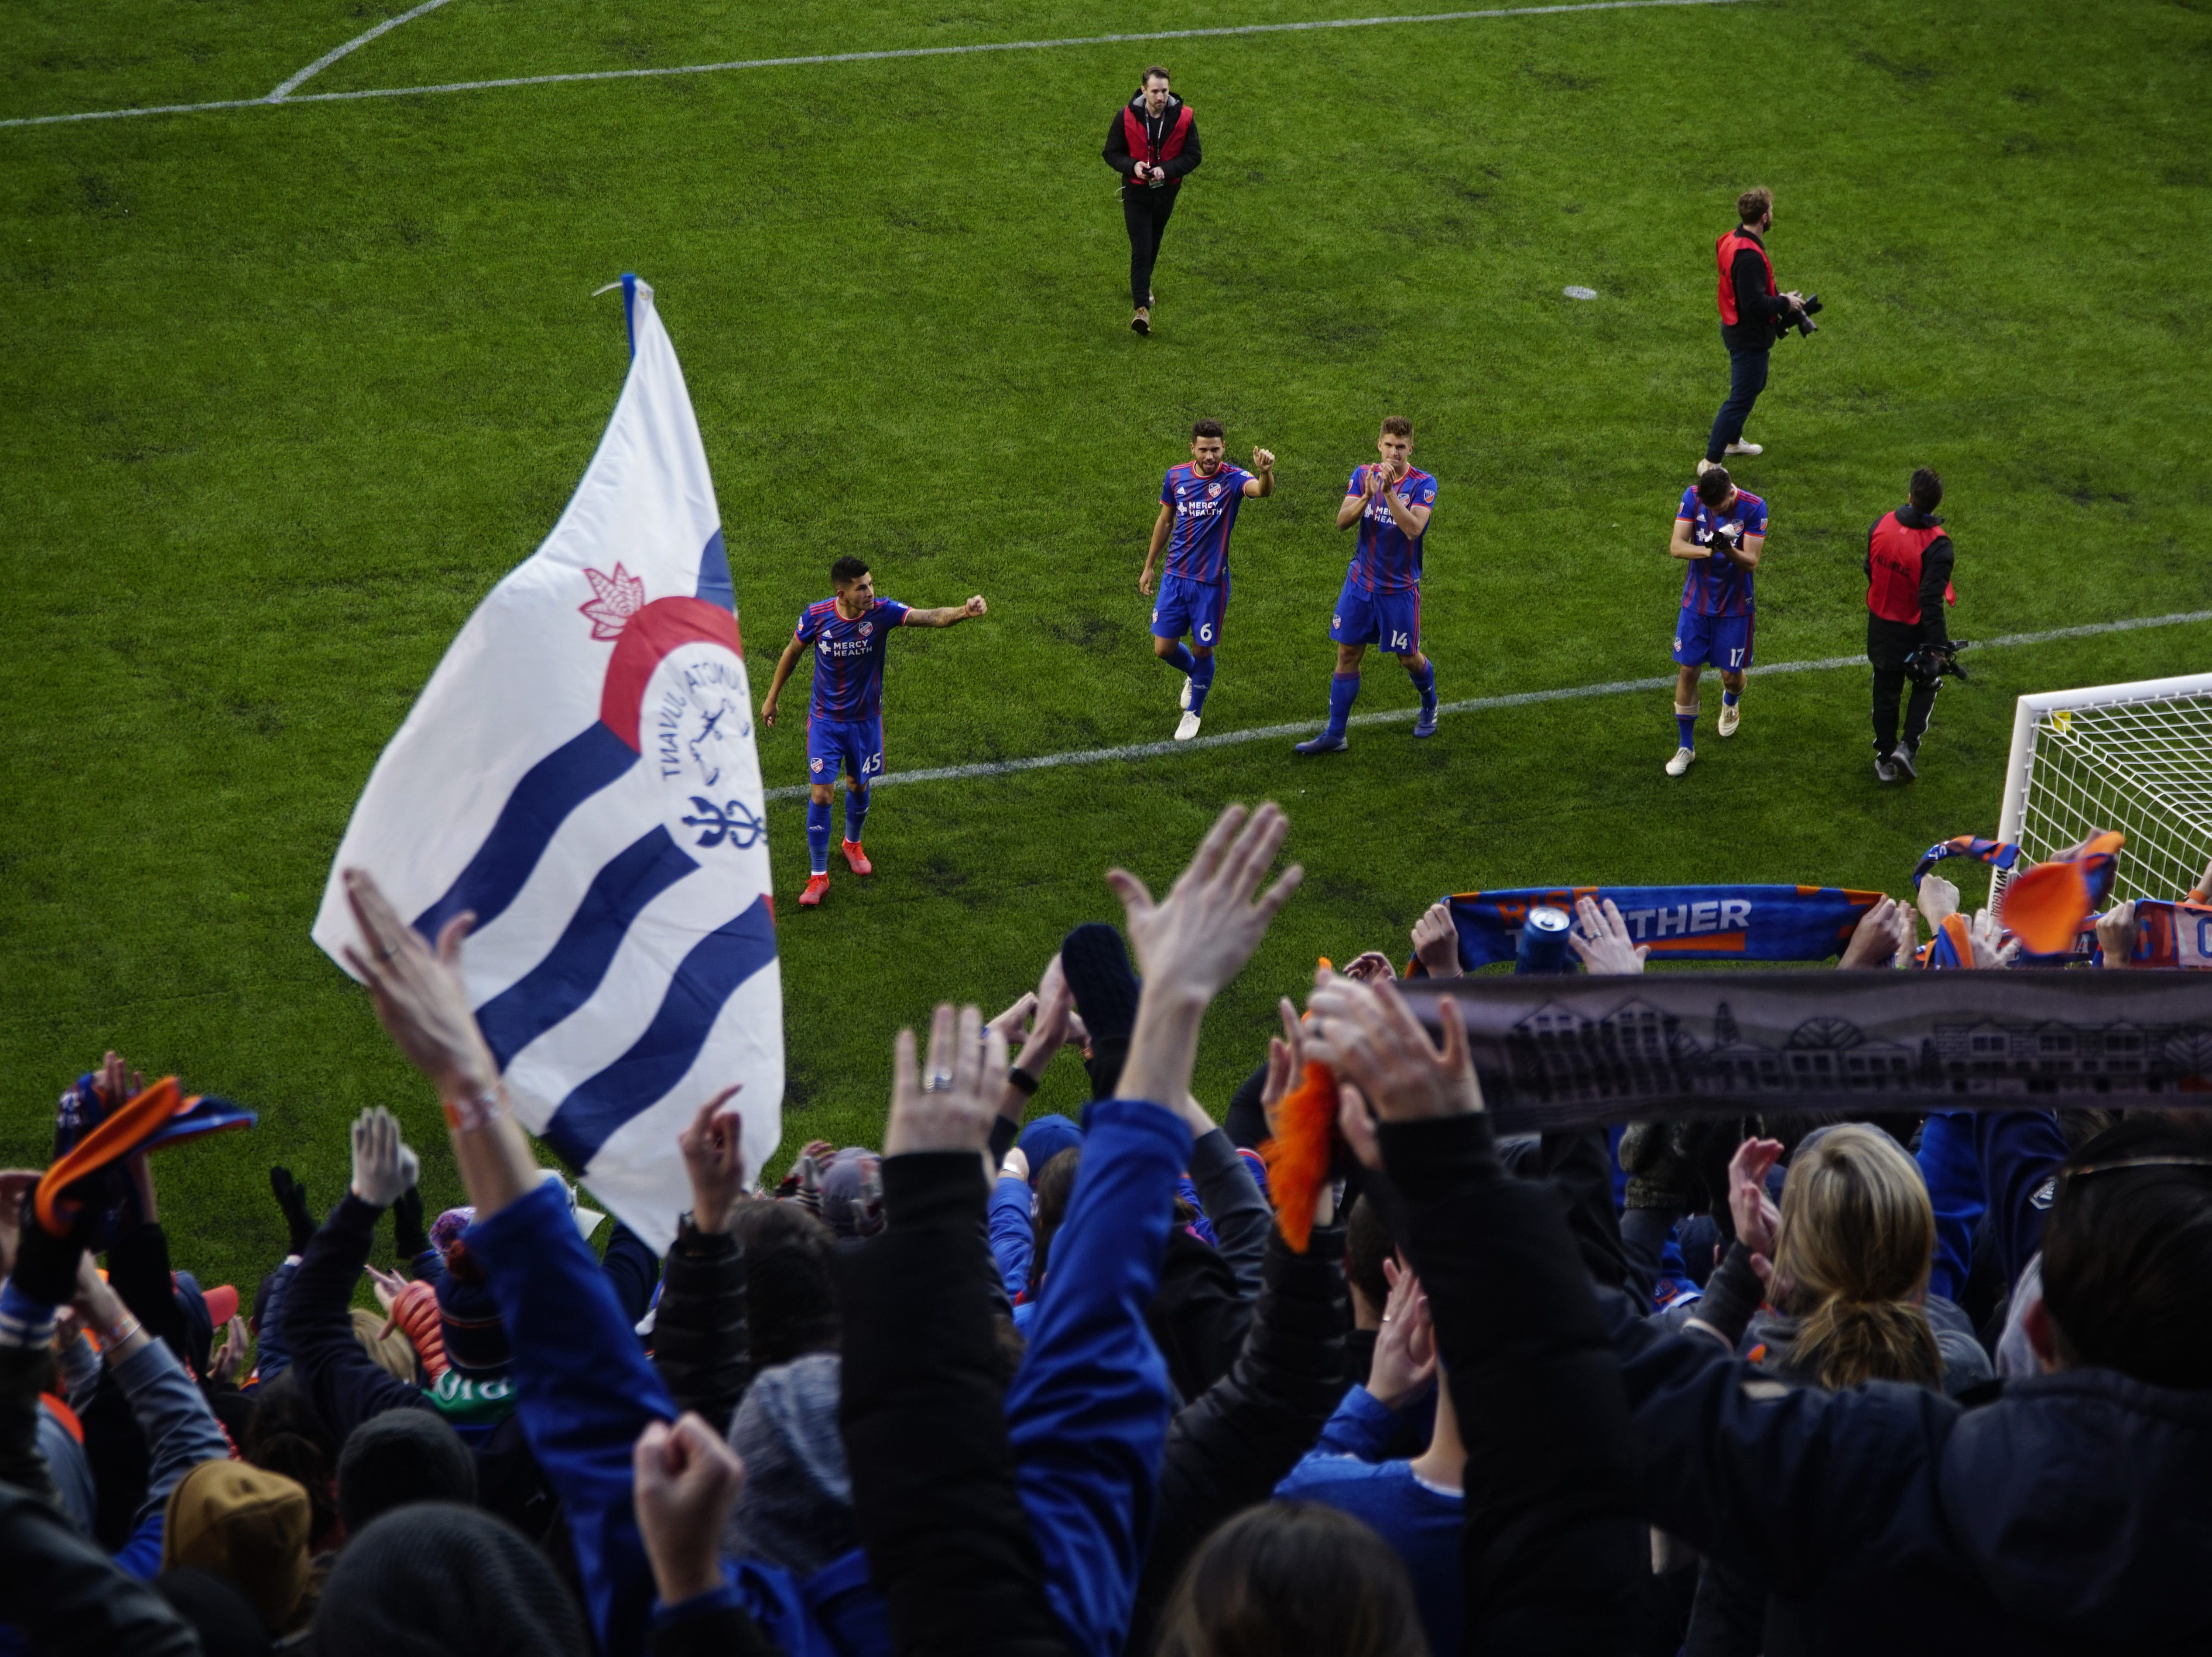 FC Cincinnati players wave to their fan section after winning their home opener against Portland at Nippert Stadium, March 17, 2019.